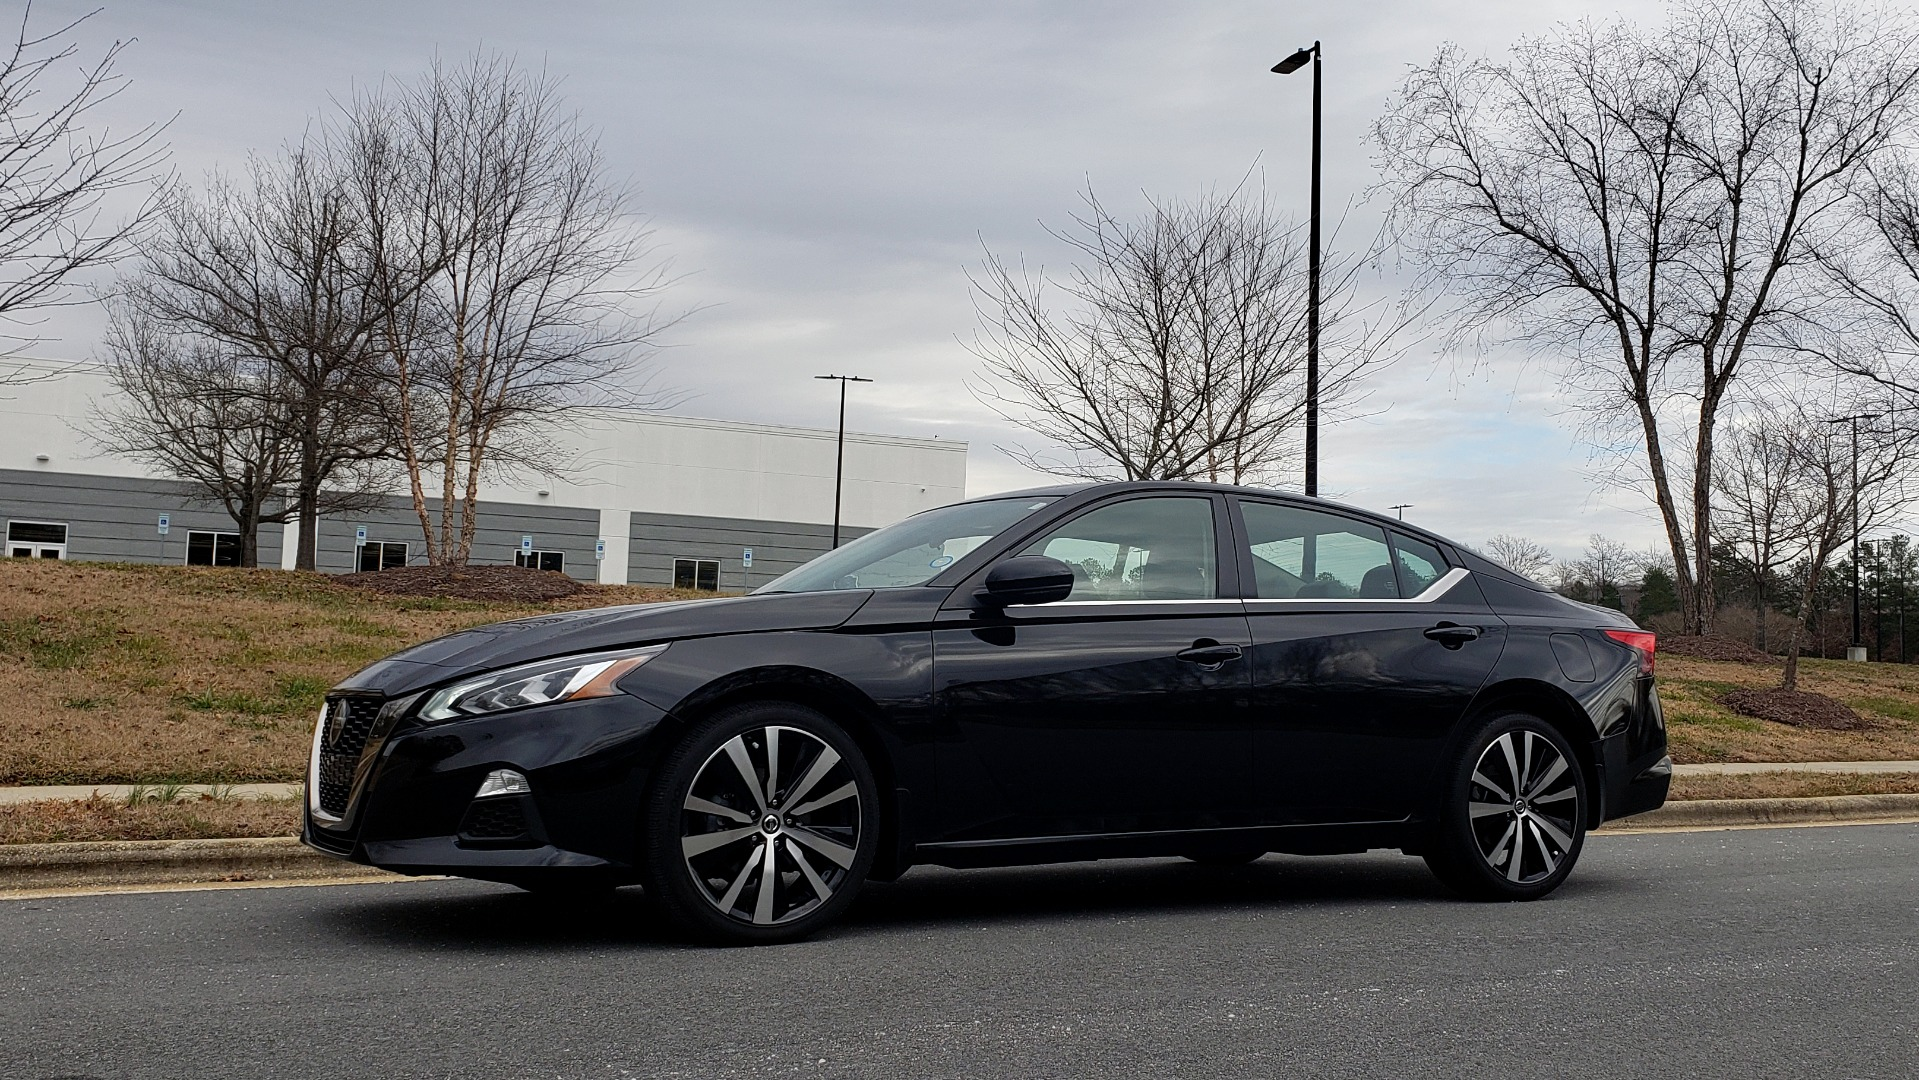 Used 2019 Nissan ALTIMA 2.5 SR PREMIUM / 2.5L / CVT TRANS / HTD STS / SUNROOF / REARVIEW for sale Sold at Formula Imports in Charlotte NC 28227 2